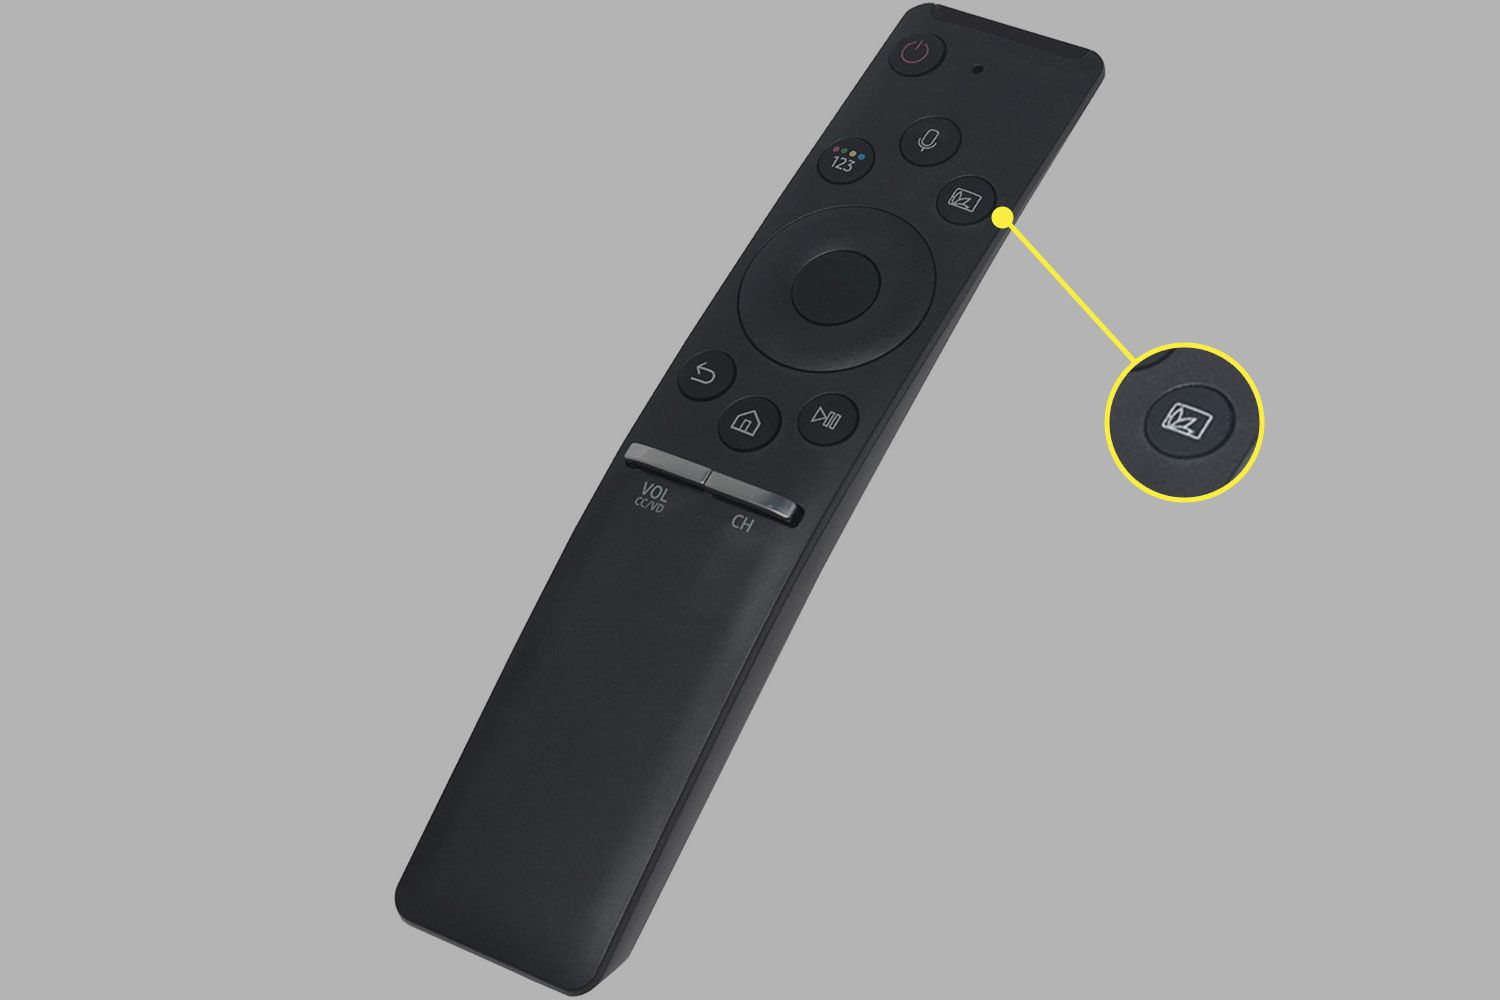 The Ambient Mode button on a Samsung TV remote